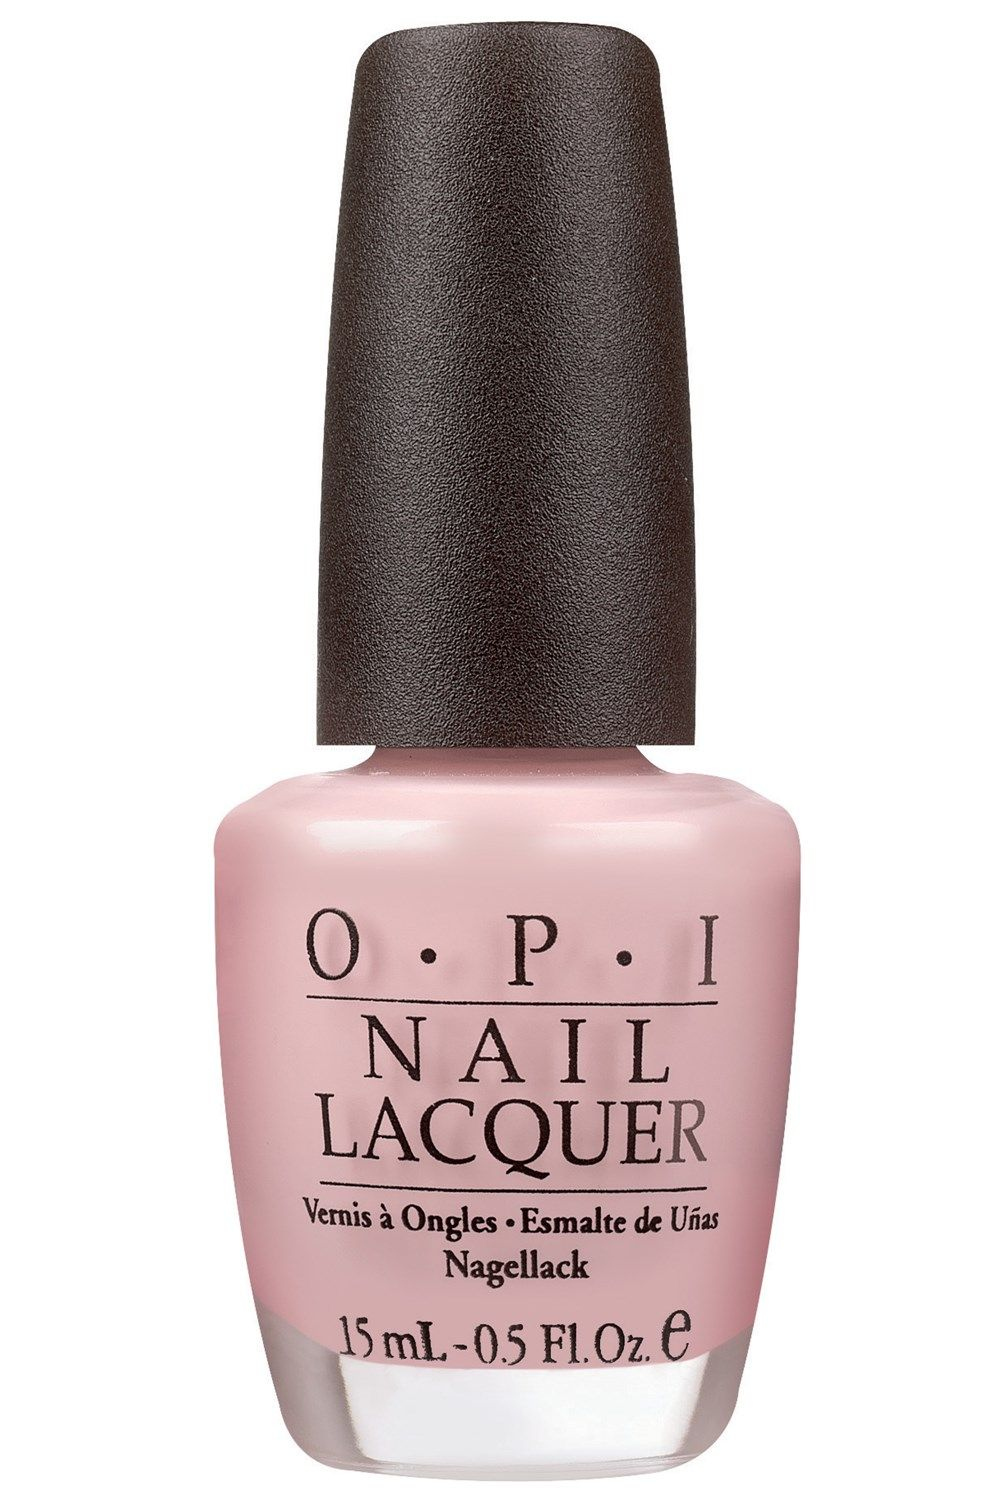 Mod About Youu Nail Lacquer  OPI  Smith u Caugheyus  Makeup and